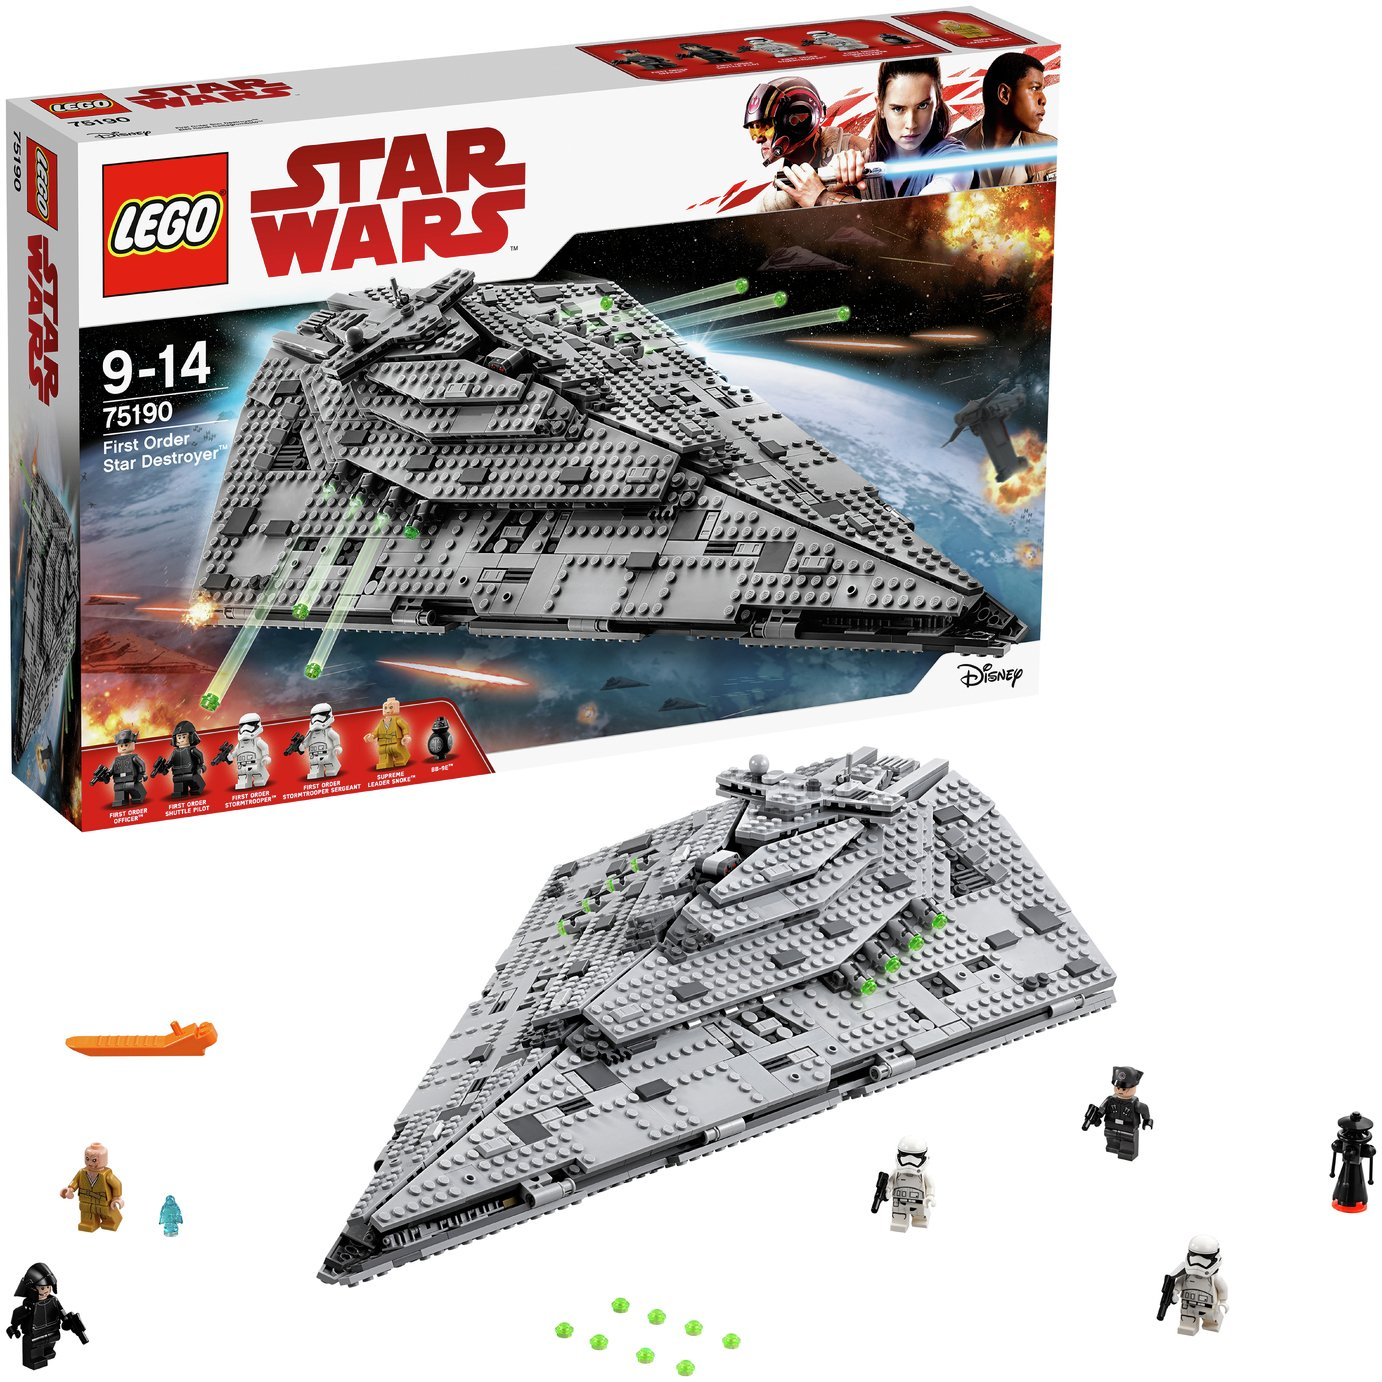 Image of LEGO Star Wars First Order Star Destroyer Toy - 75190